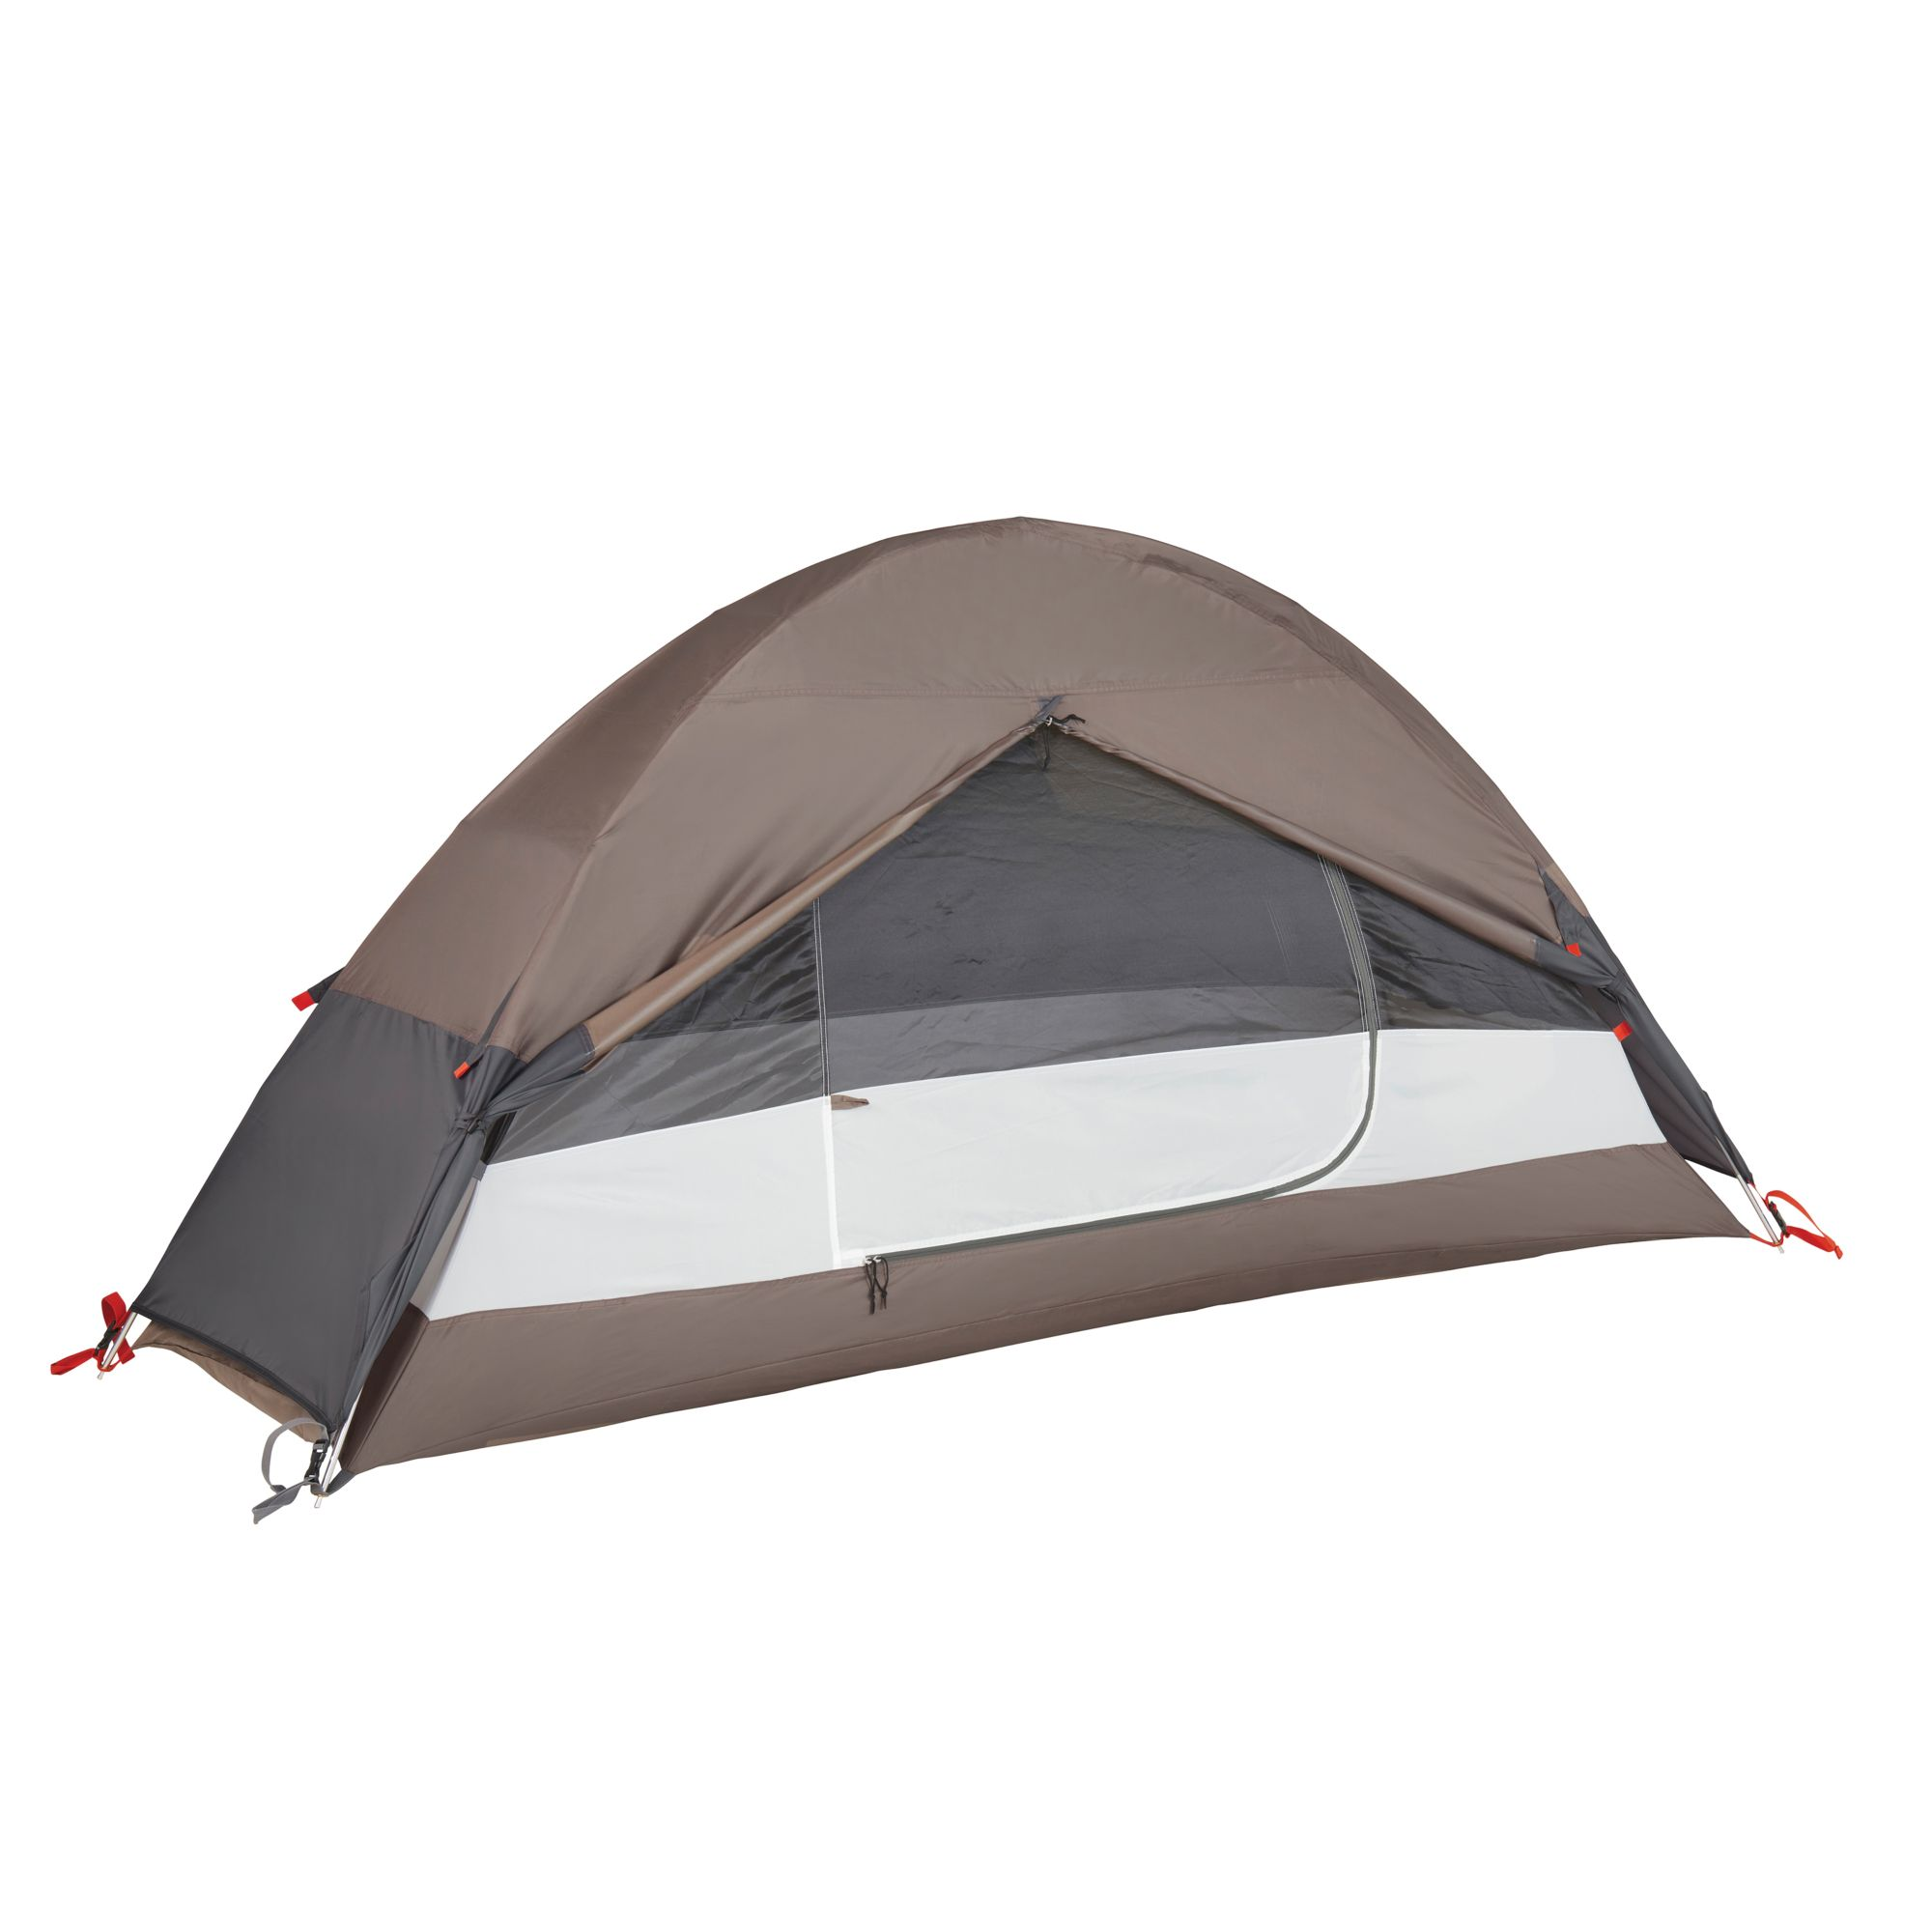 sc 1 st  DICKu0027S Sporting Goods & Kelty Circuit 1 Person Tent | DICKu0027S Sporting Goods